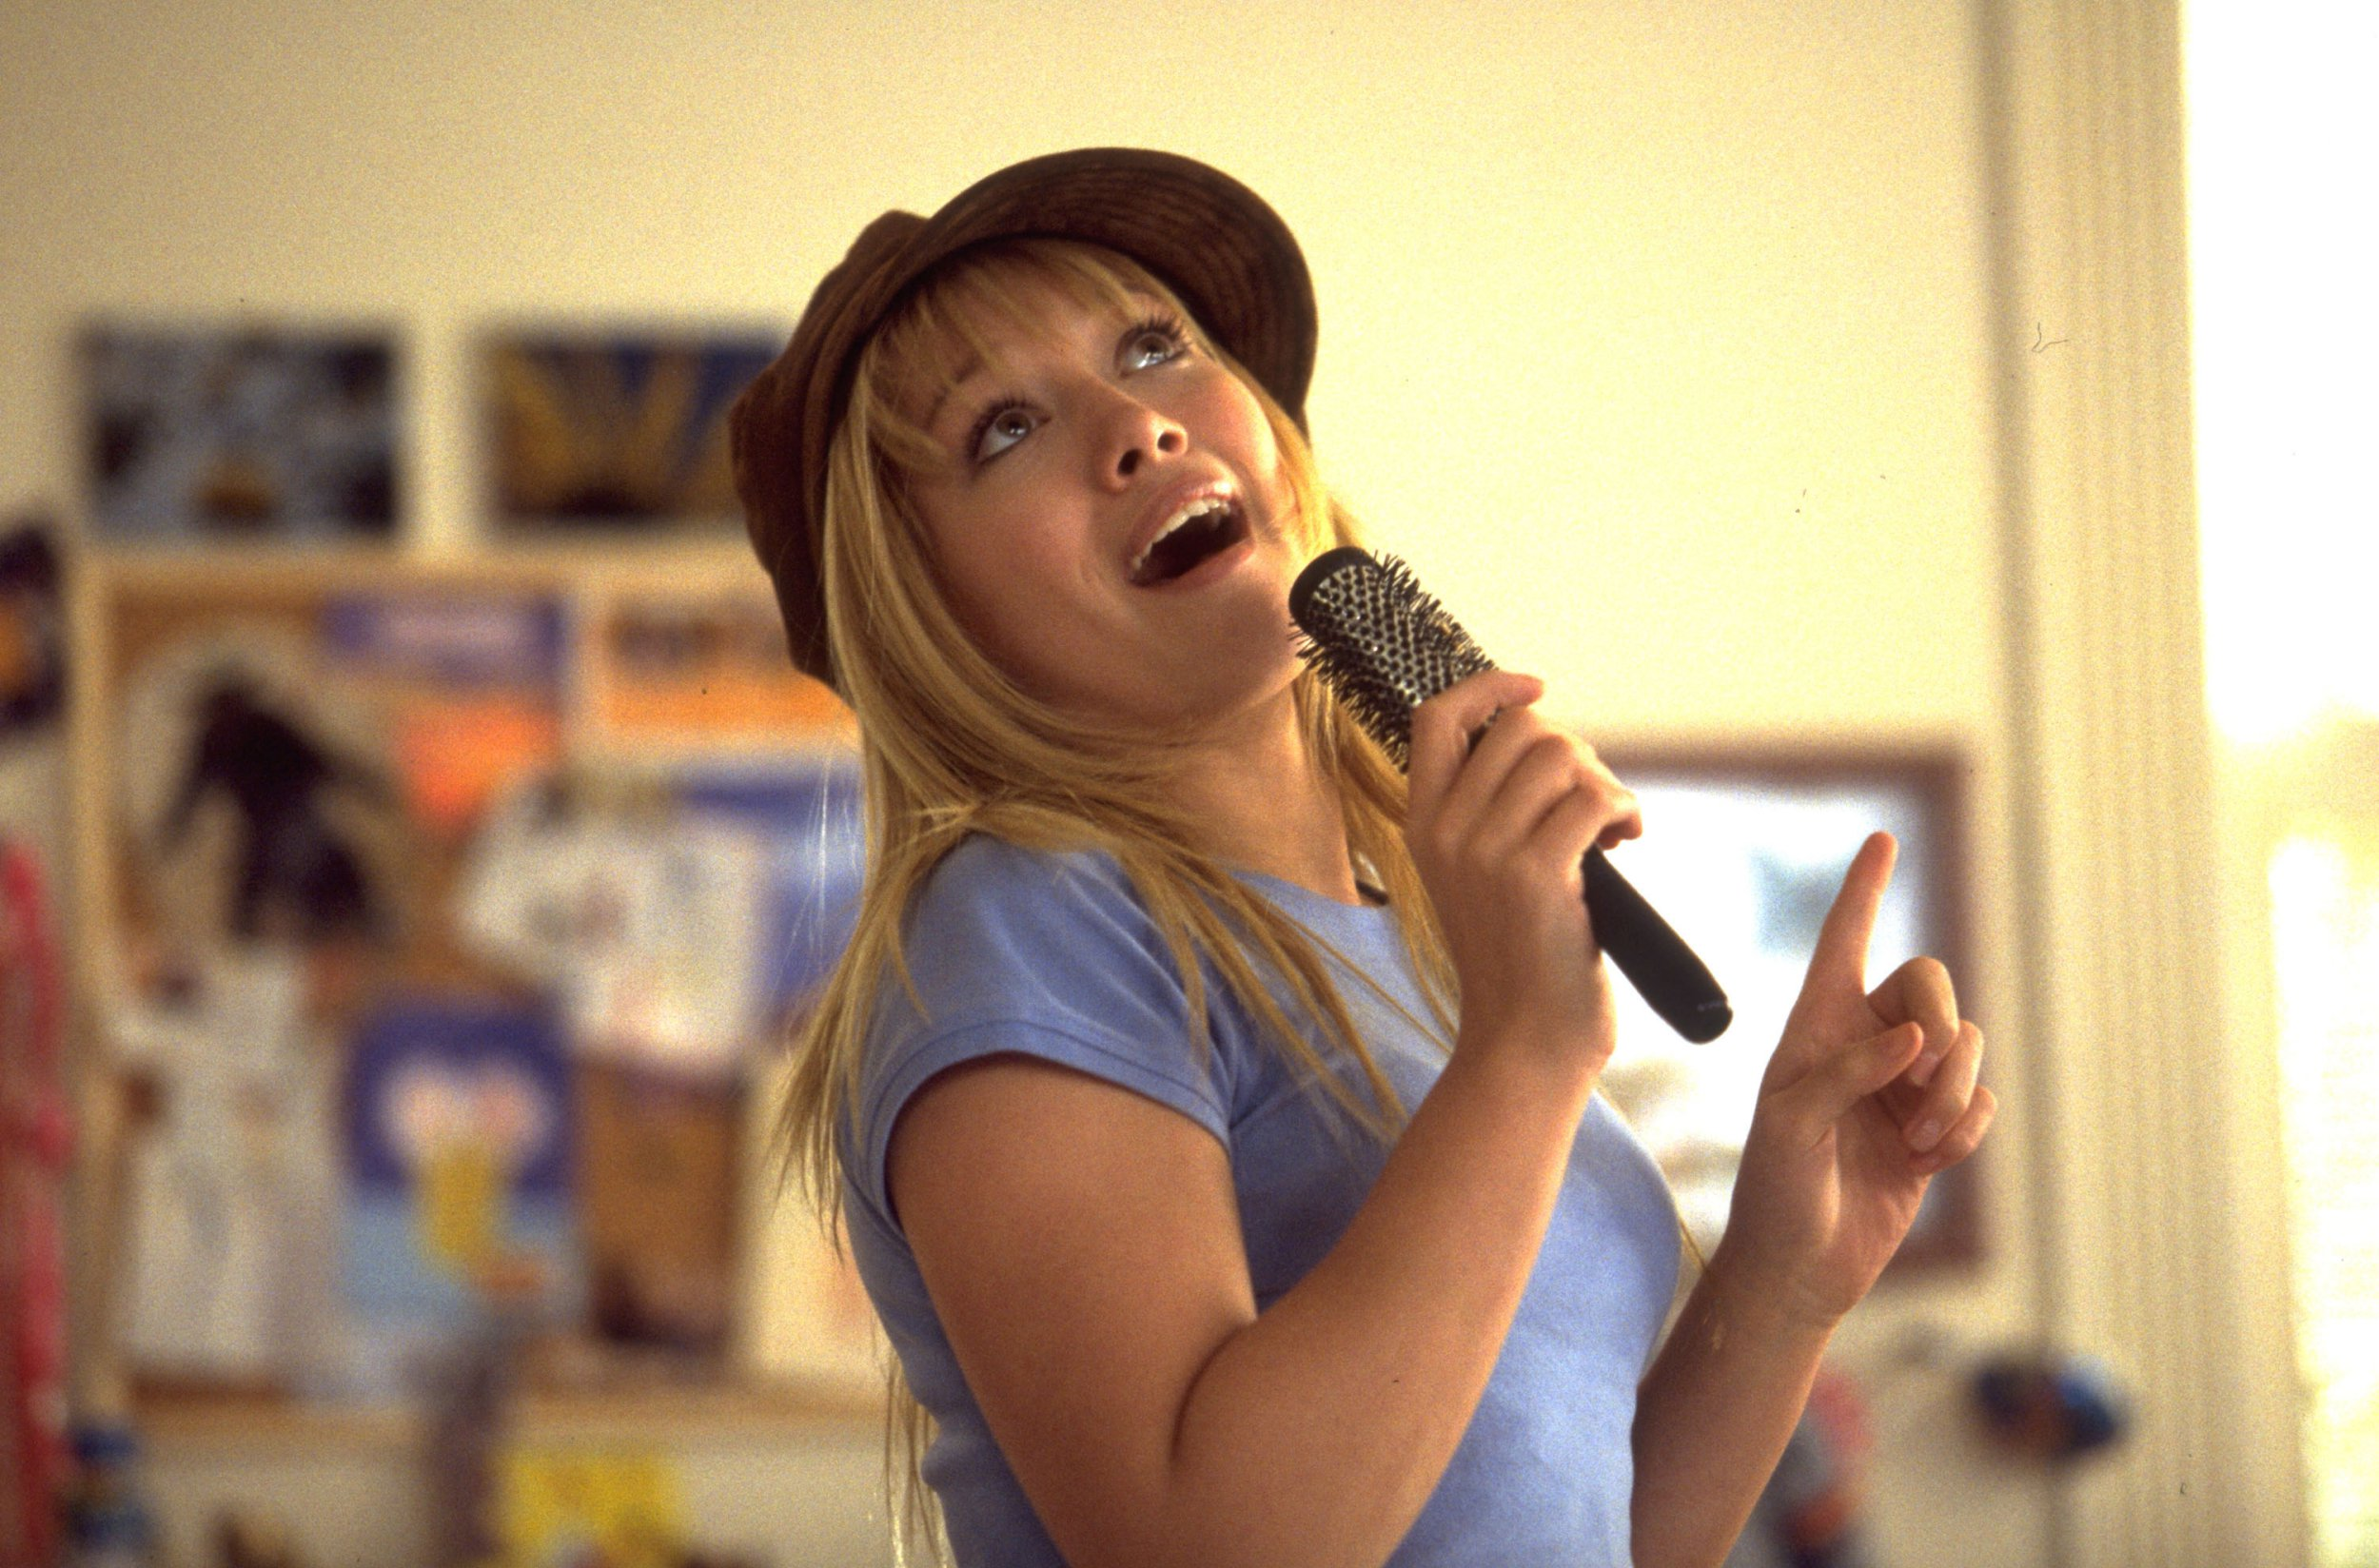 Hilary Duff reveals there's been Lizzie McGuire revival talks: 'It could be a possibility'